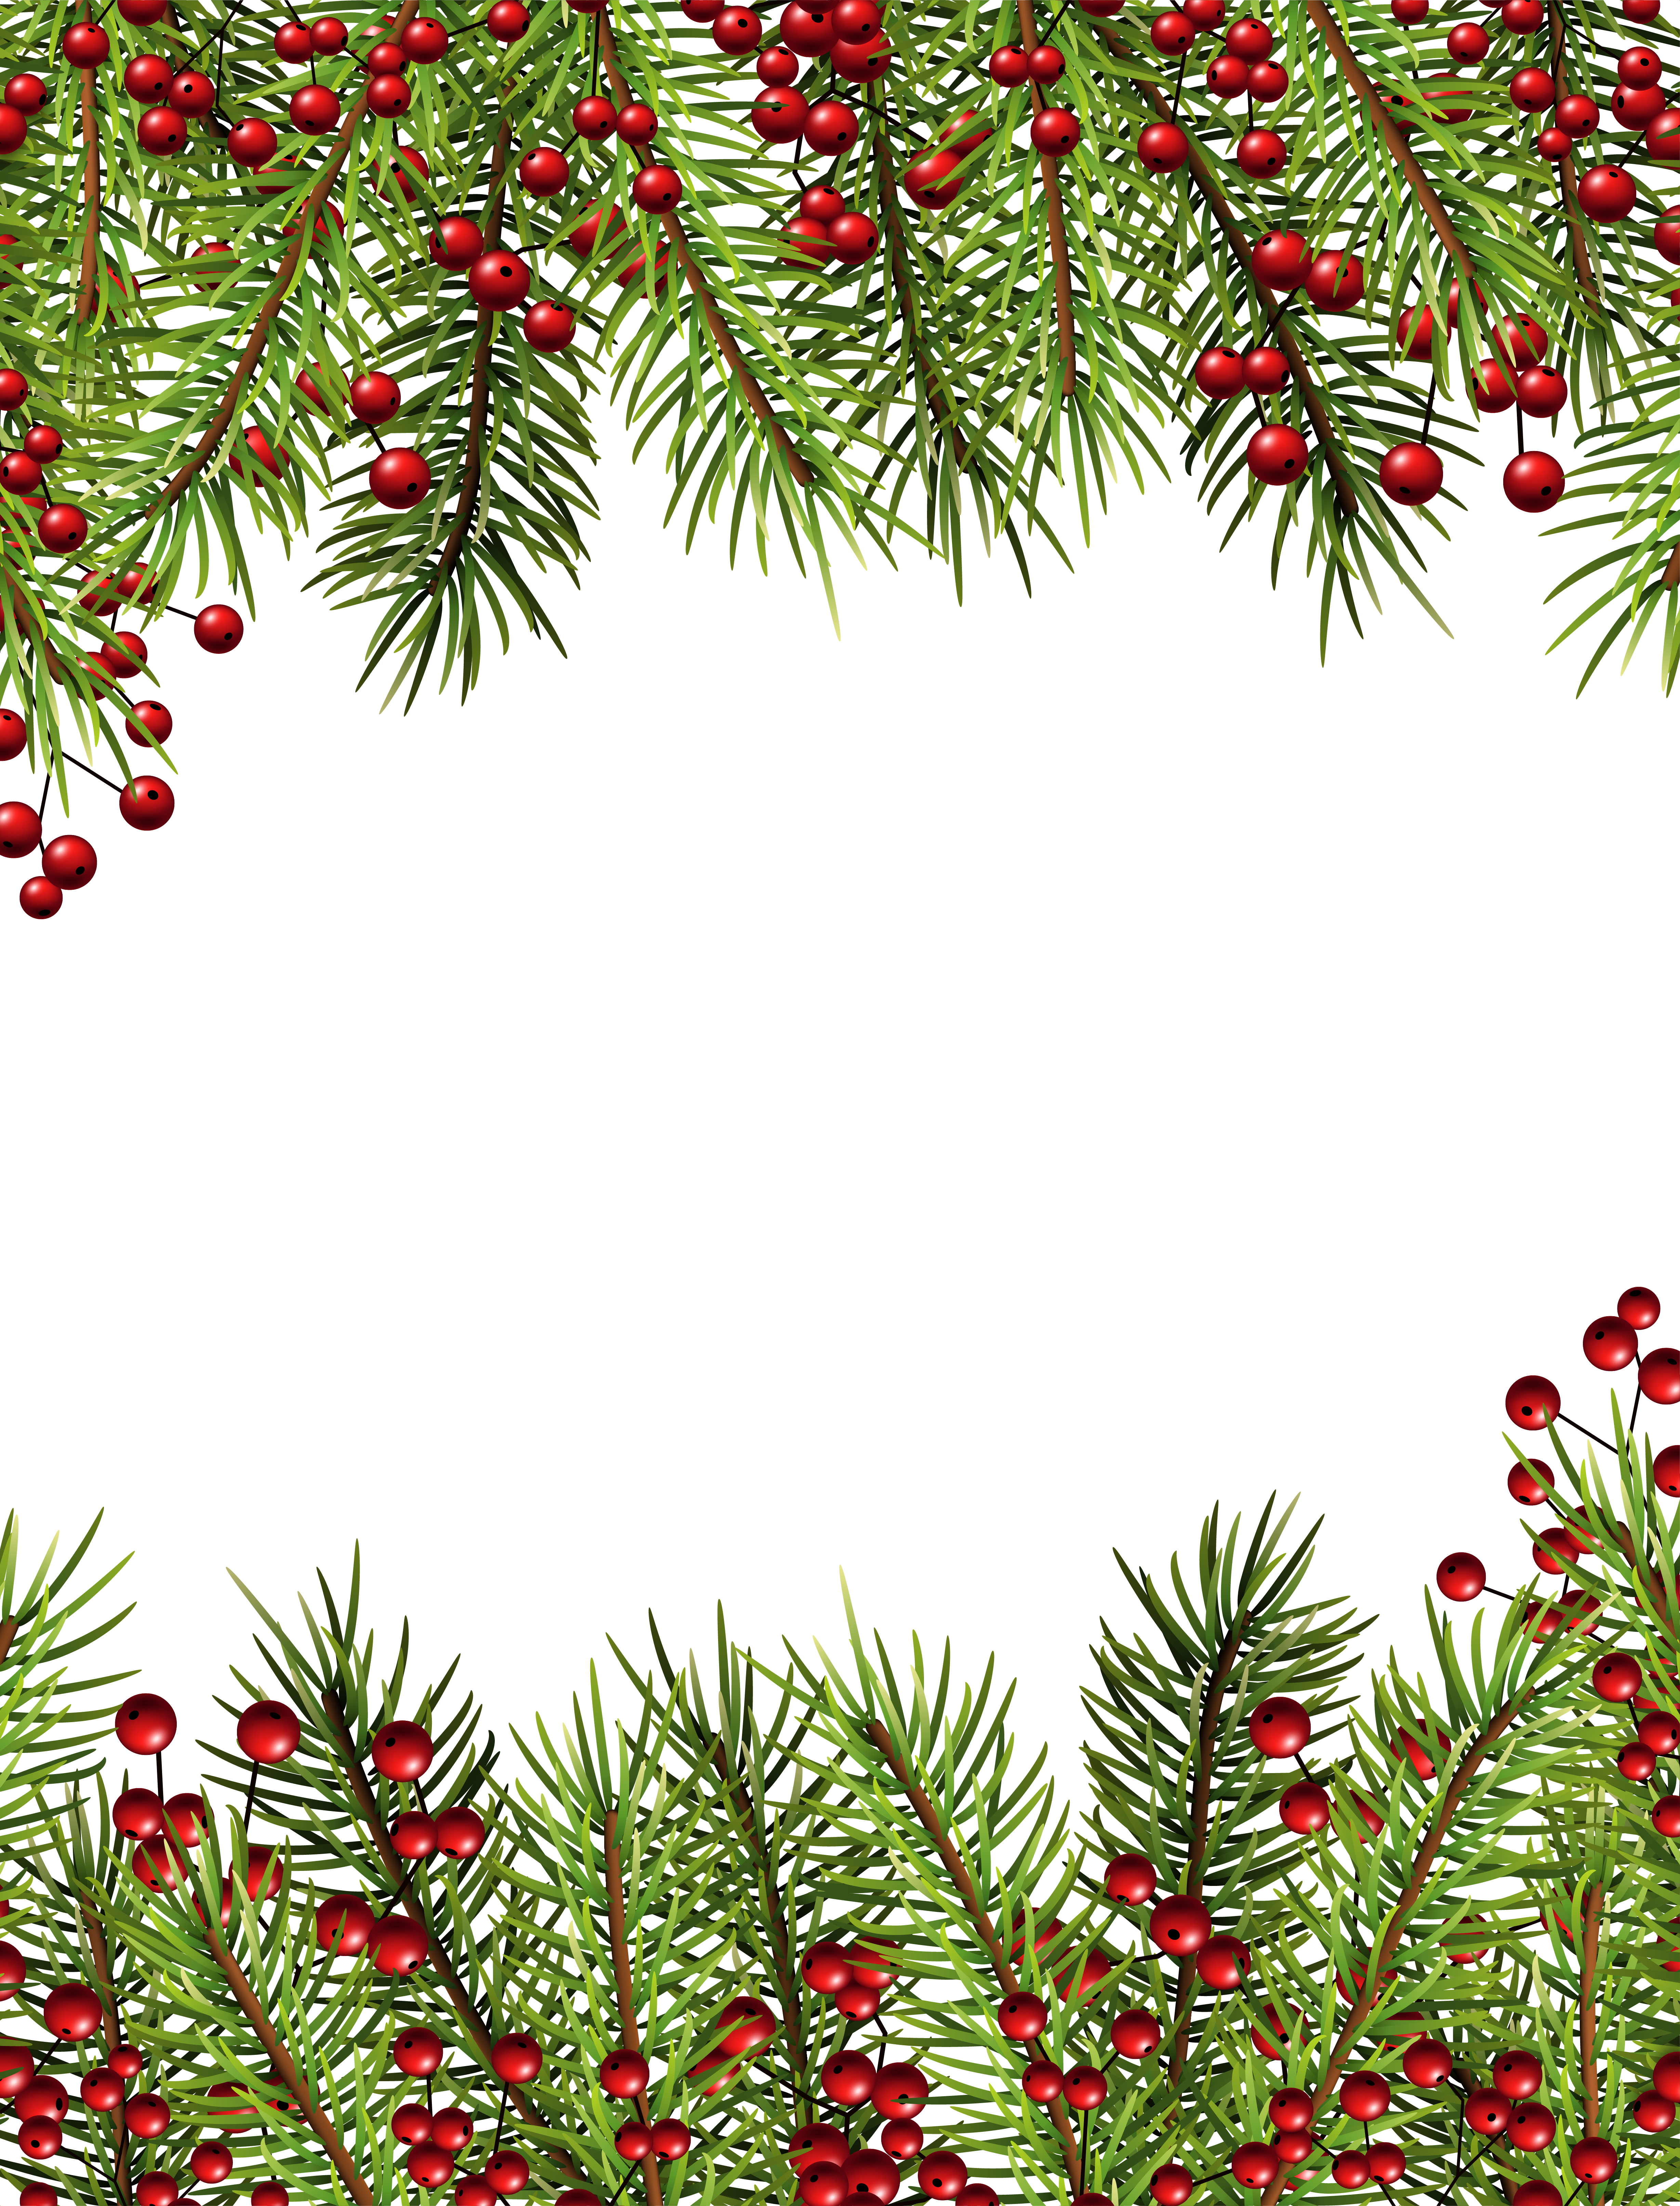 Holiday frame png. Christmas holly transparent border